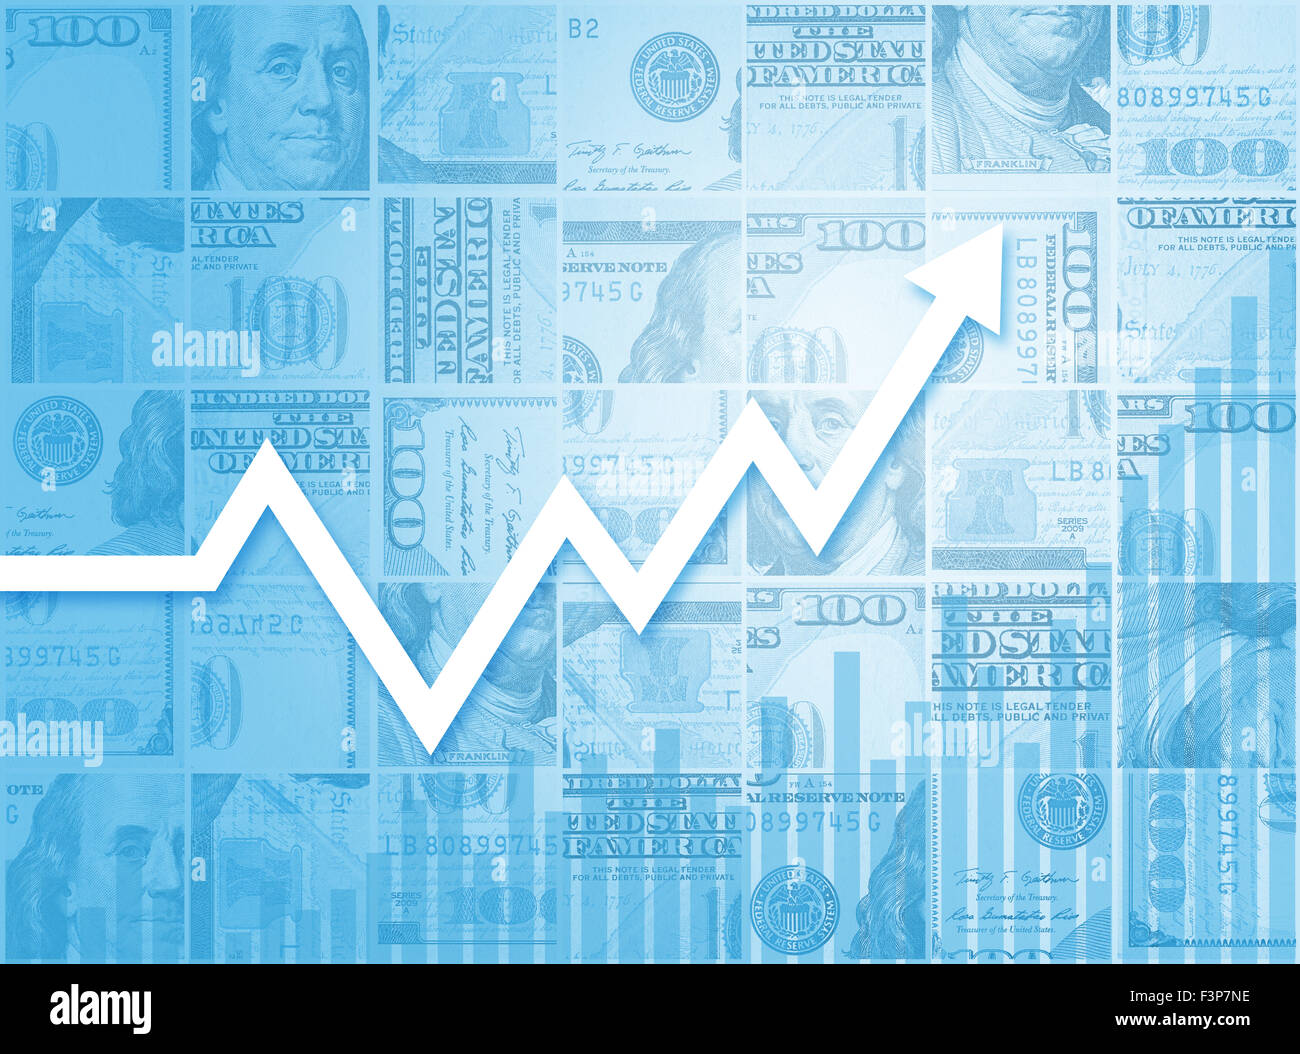 Business Growth Financial Stock Market Bar Chart Graph - Stock Image